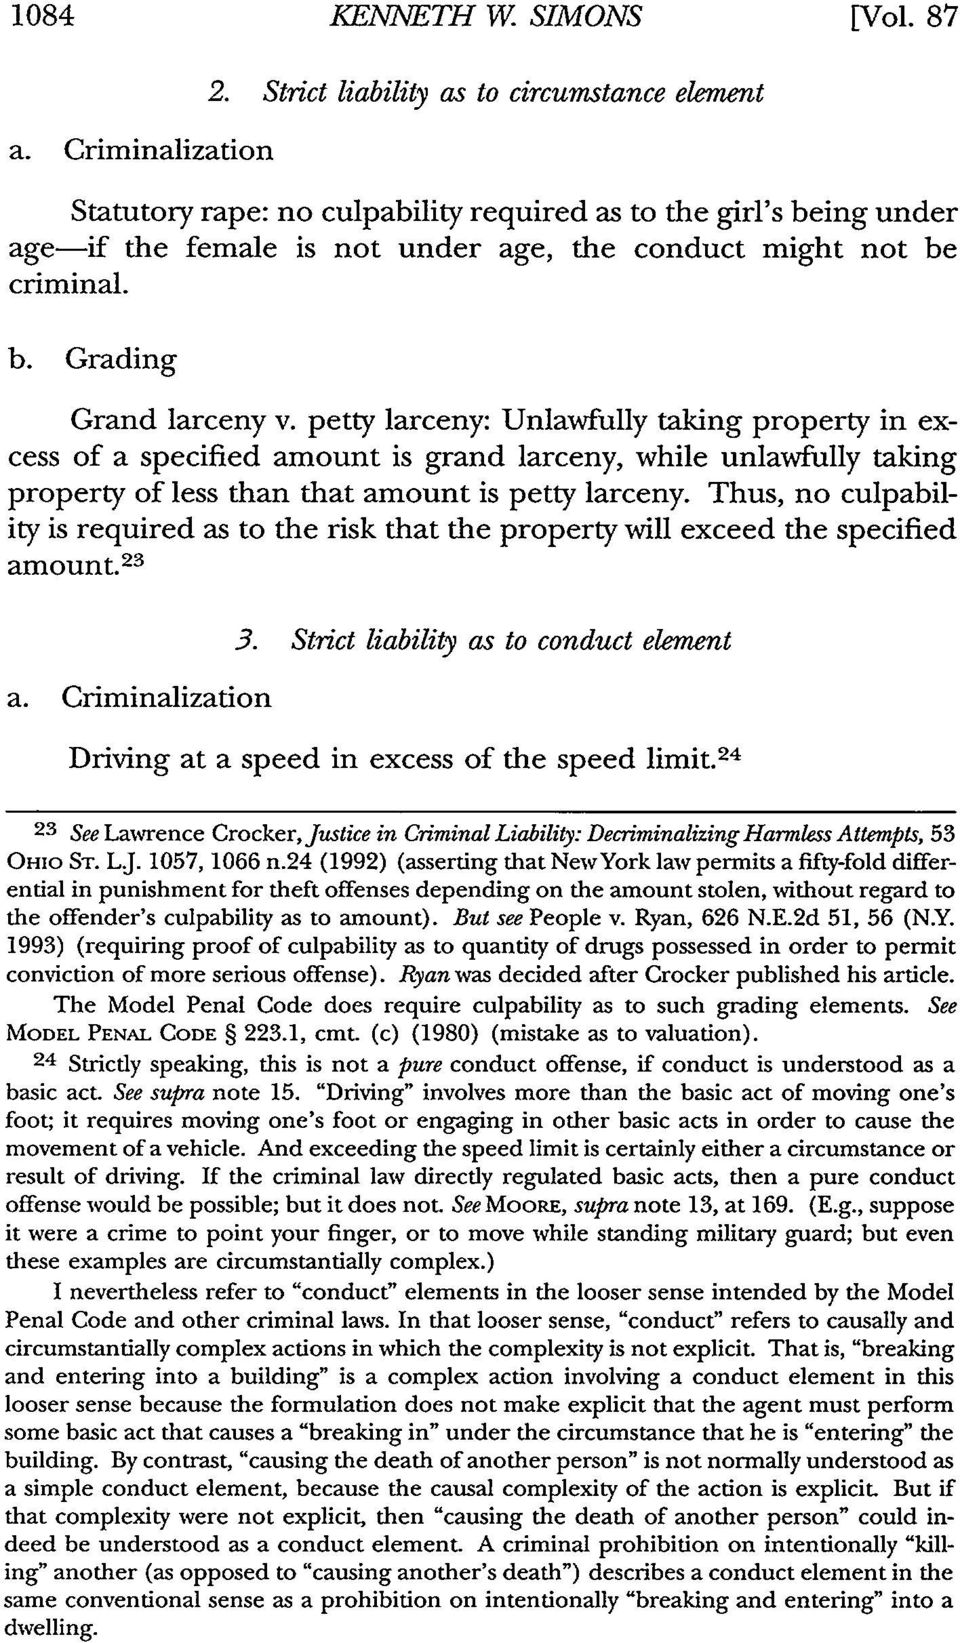 petty larceny: Unlawfully taking property in excess of a specified amount is grand larceny, while unlawfully taking property of less than that amount is petty larceny.